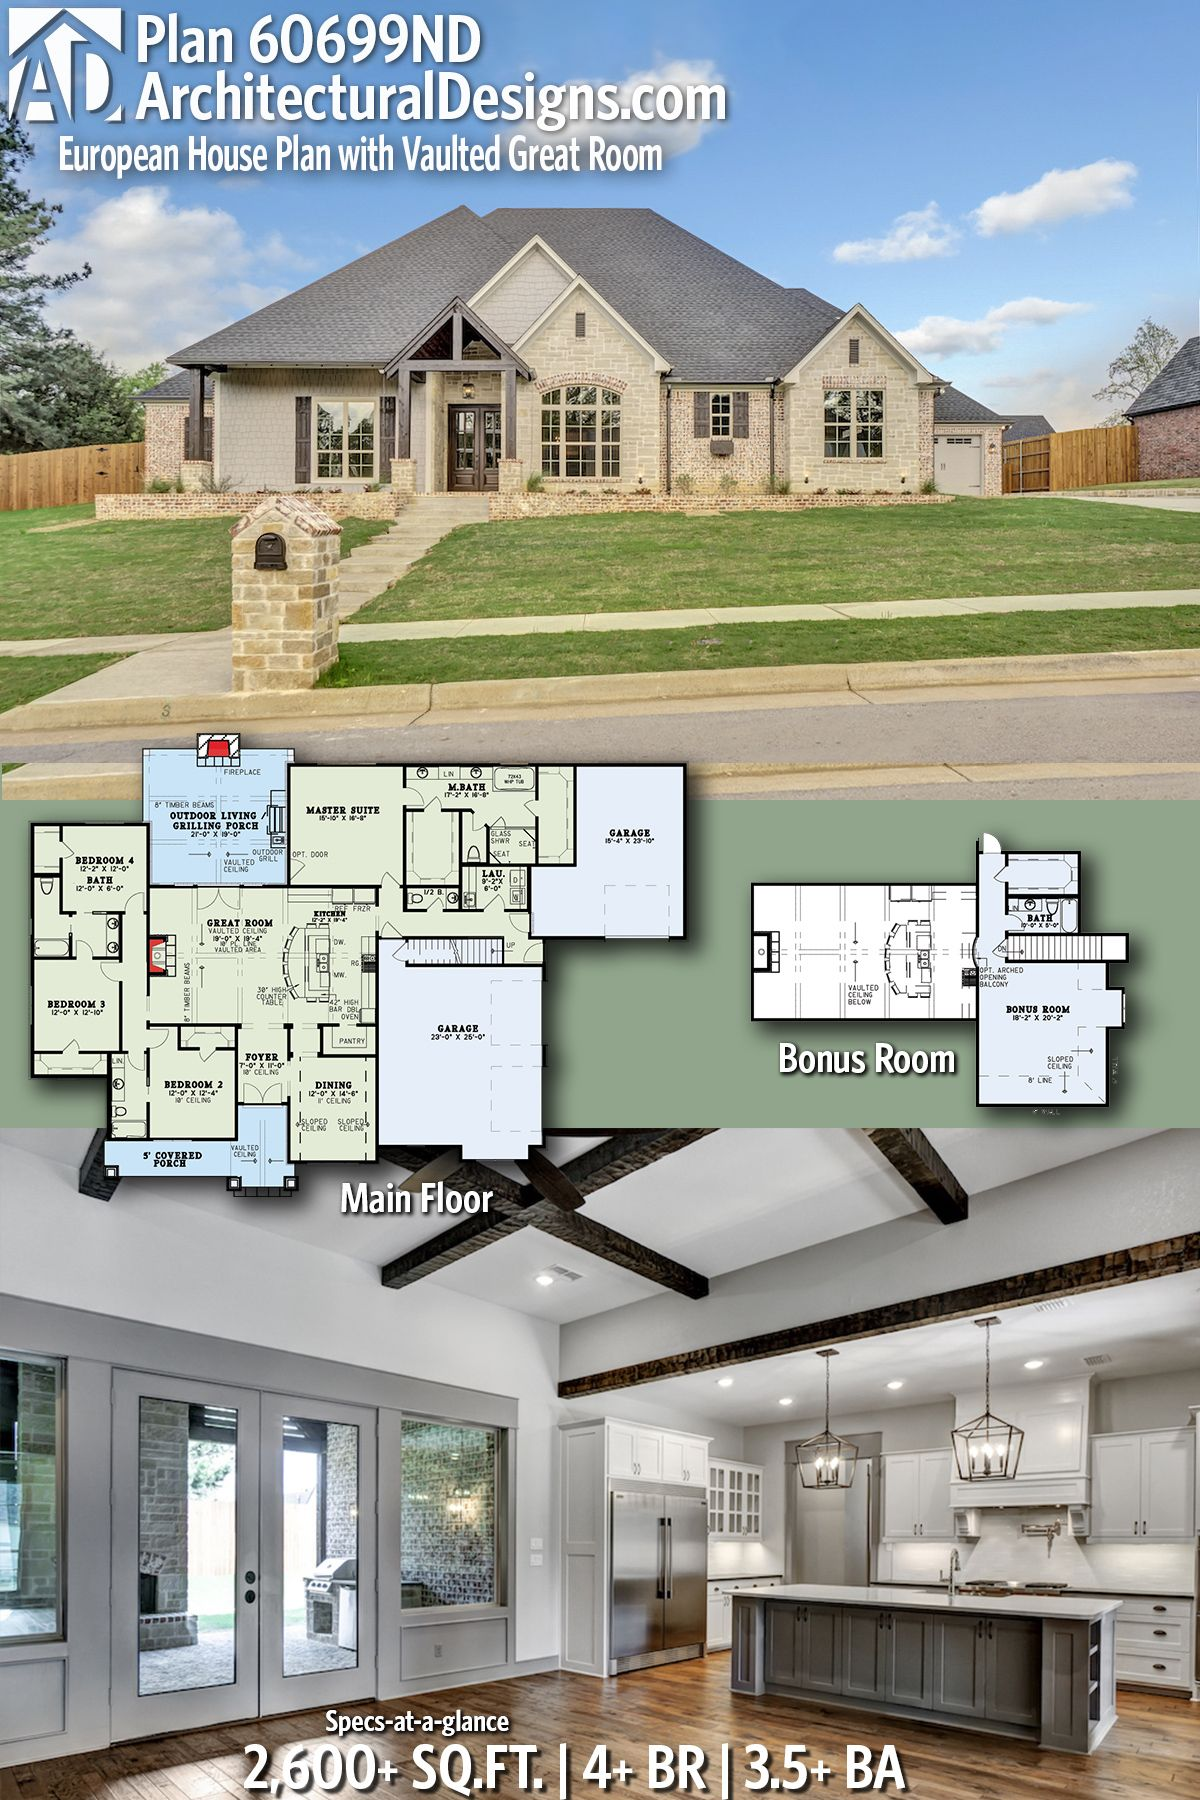 Plan 60699nd European House Plan With Vaulted Great Room House Plans Dream House Plans European House